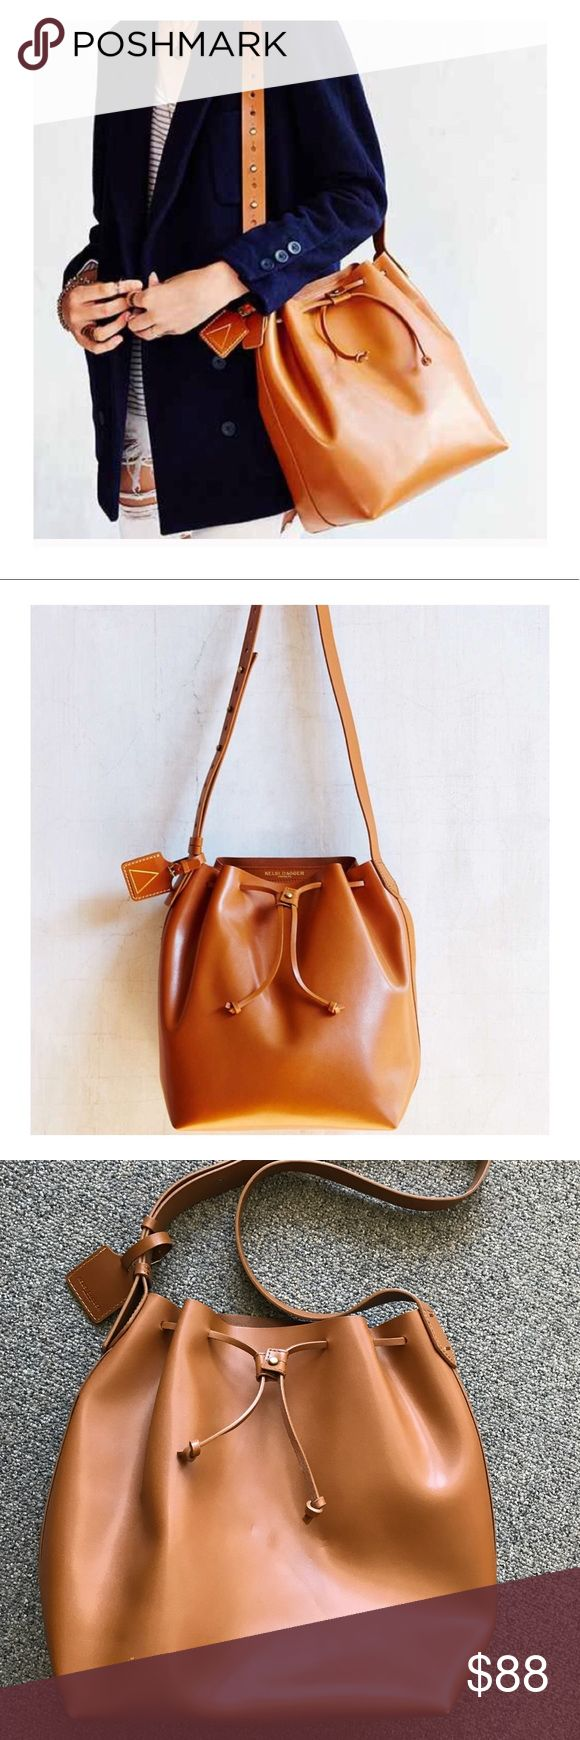 """Kelsi Dagger """"Brooklyn Wythe"""" bucket hobo bag Bright cognac color (most closest to color shown in first picture). Used only a couple times. This bag also has kind of a cinnamon scent to it from being cleaned, but it should go away after use. Details: - Single adjustable shoulder strap - Drawstring top - Leather construction - Interior features zip pocket and 3 credit card slots - Approx. 12.5"""" H x 15"""" W x 6.5"""" D - Approx. 14-22"""" strap drop - Imported -Leather Kelsi Dagger Bags Shoulder Bags"""